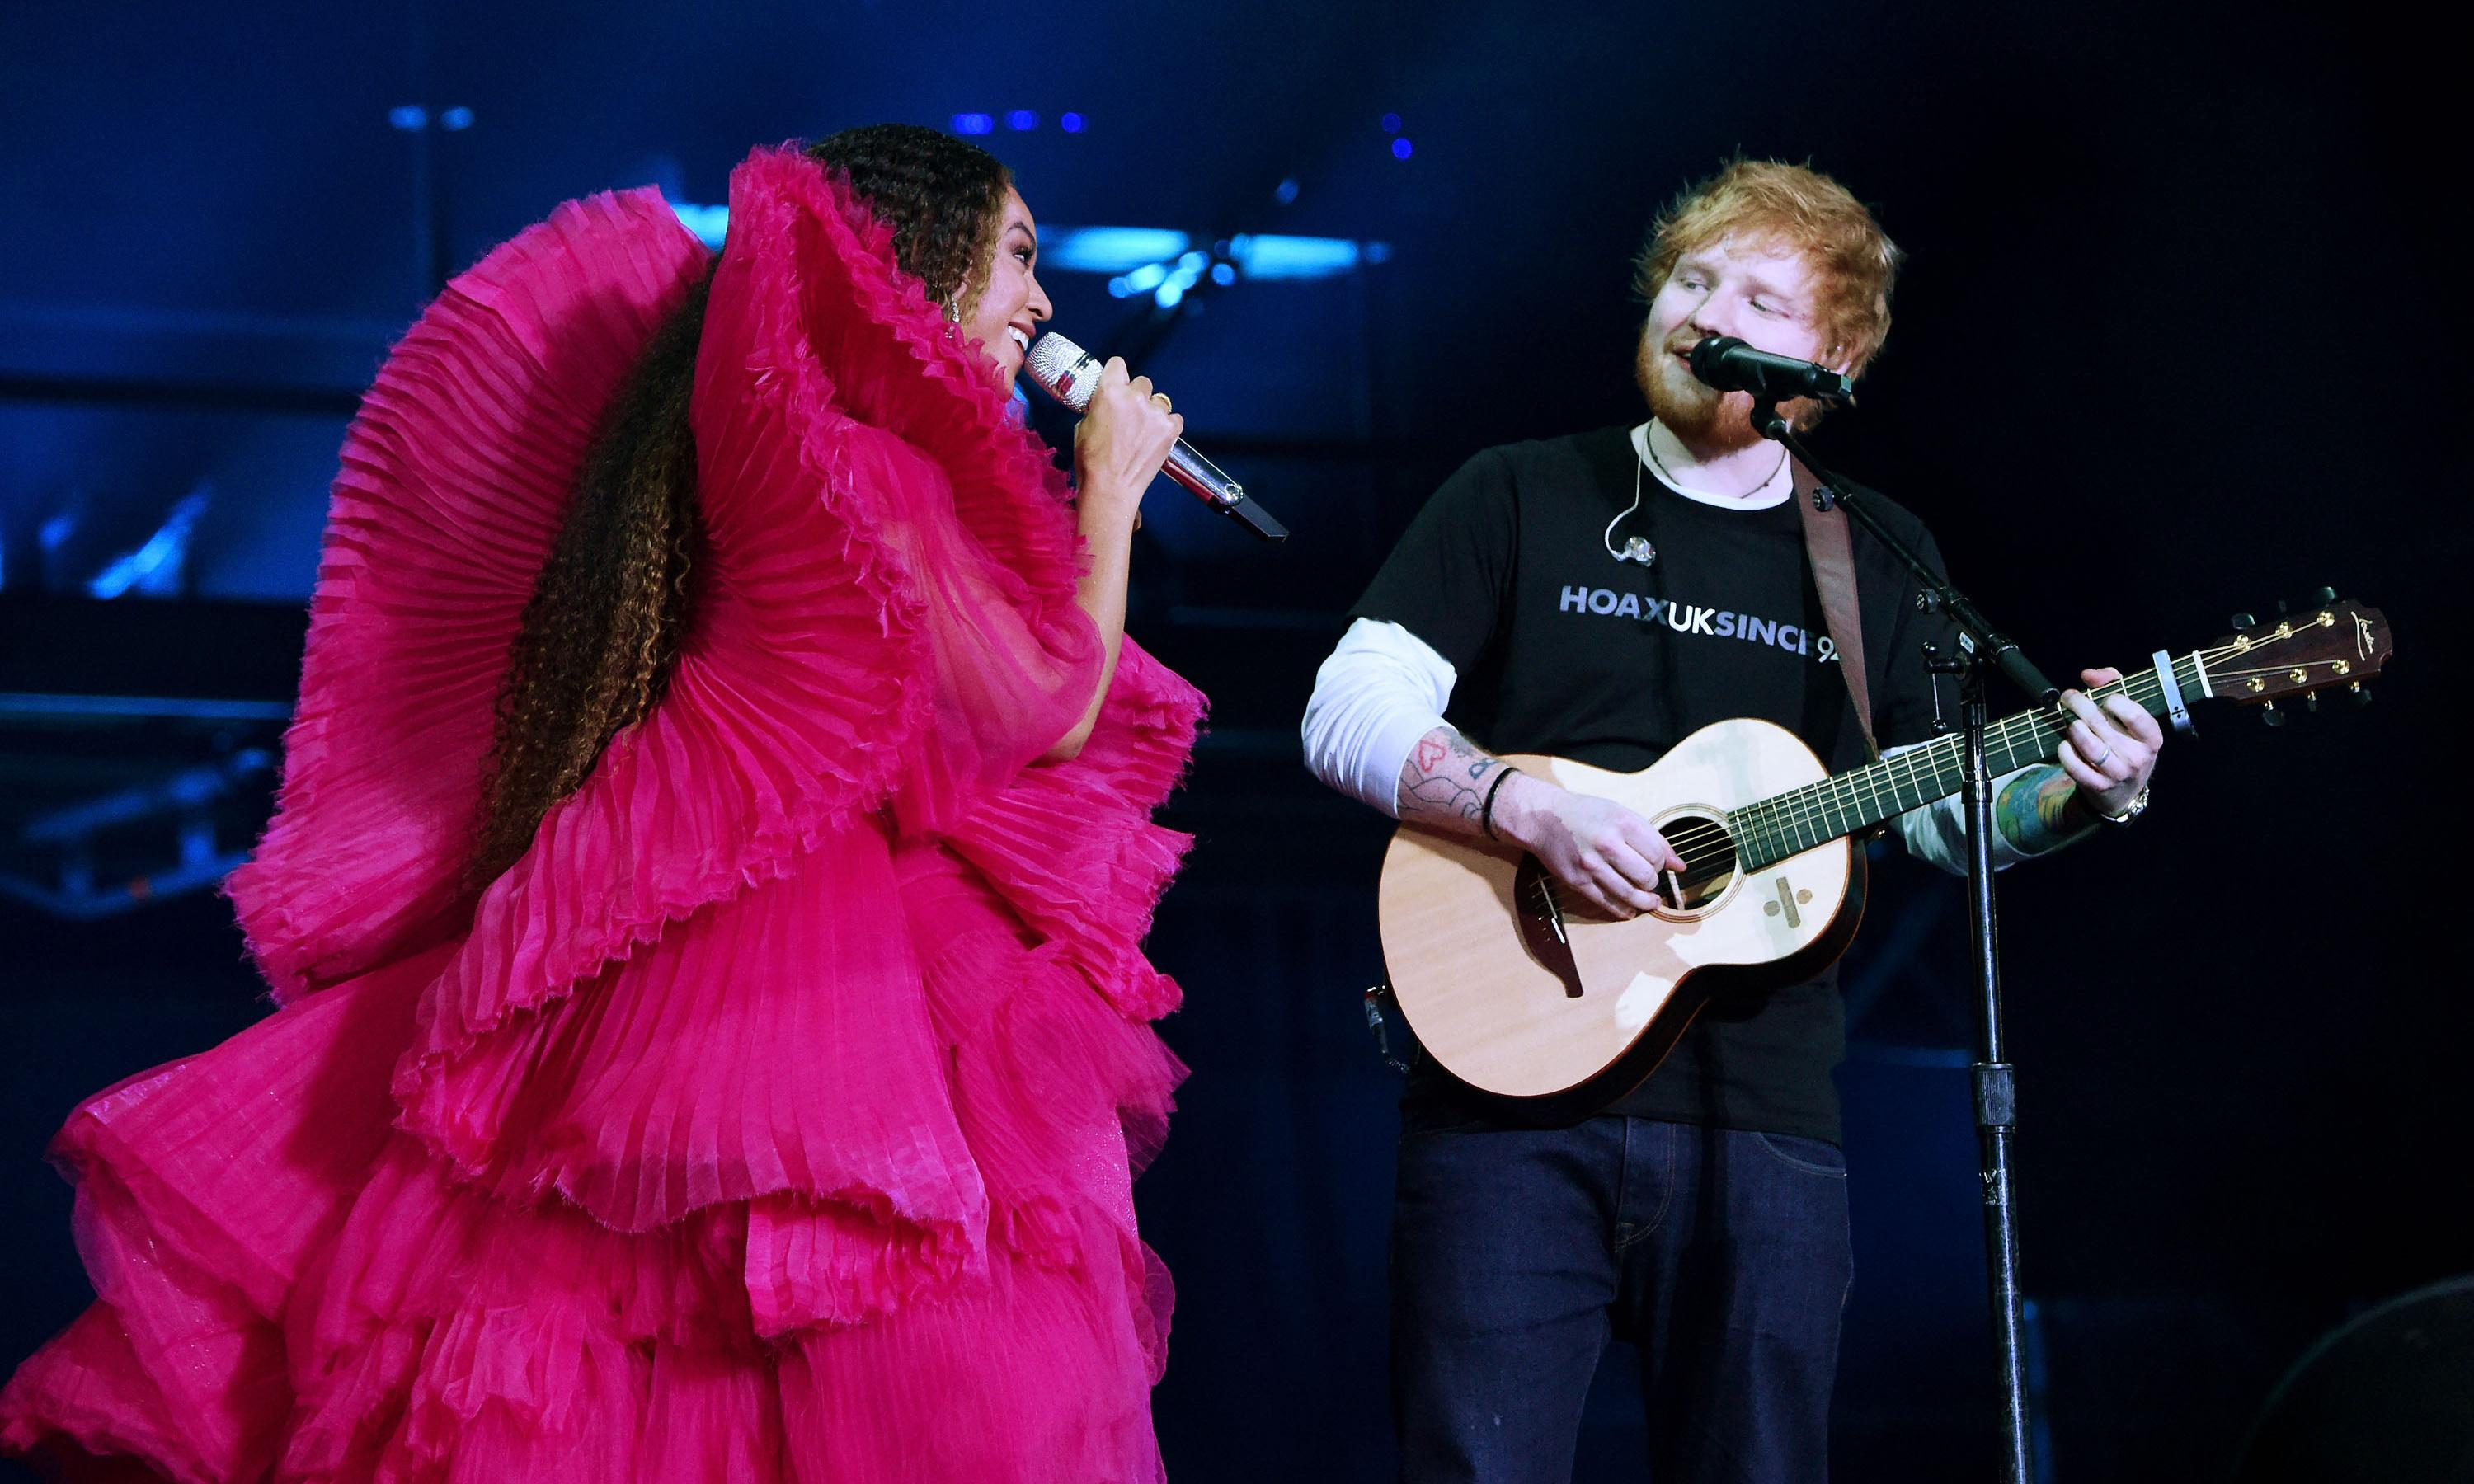 Beyoncé, Ed Sheeran and our expectations of men and women